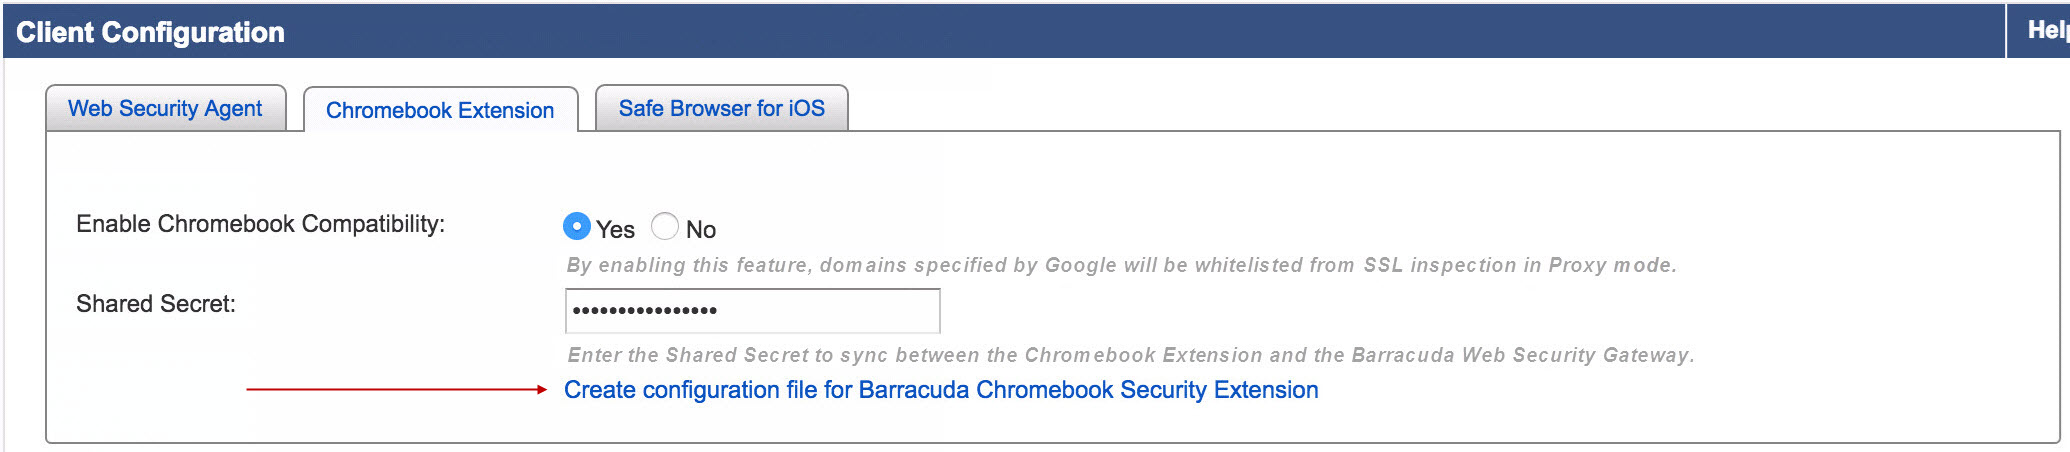 How to Get and Configure the Barracuda Chromebook Security Extension